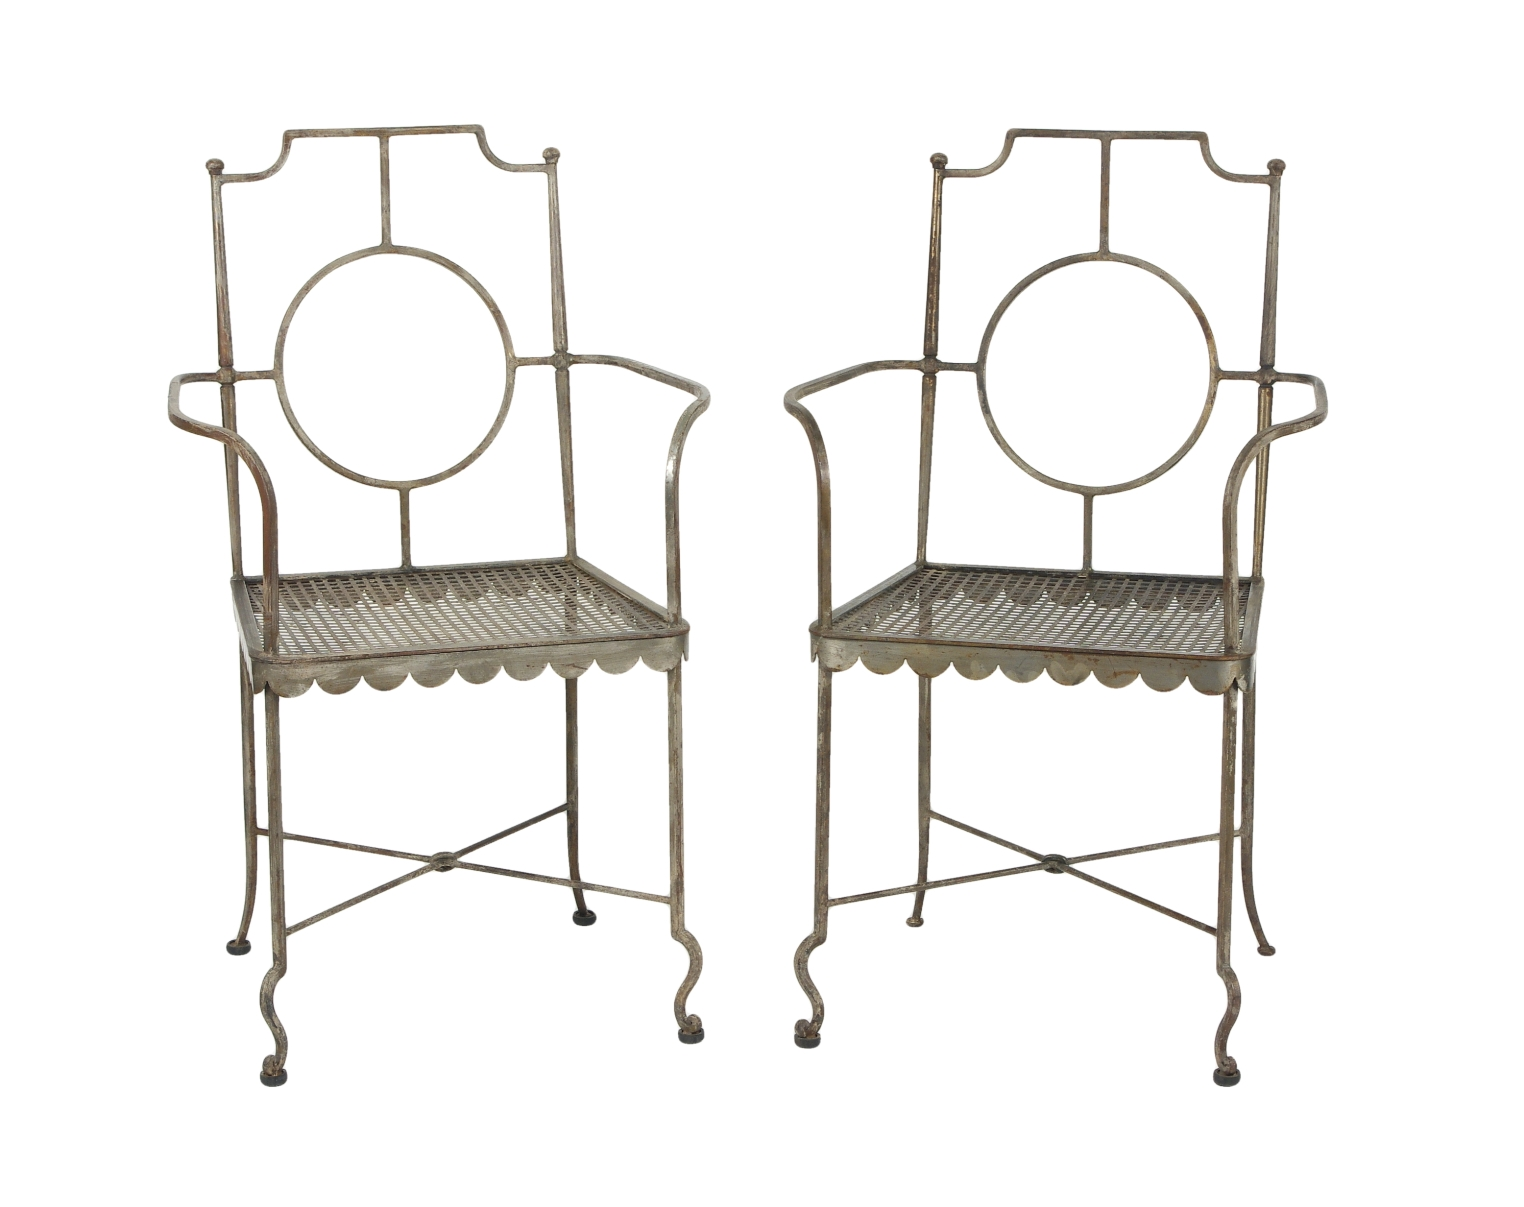 Pair of Poillerat Style Wrought Iron Garden Chairs